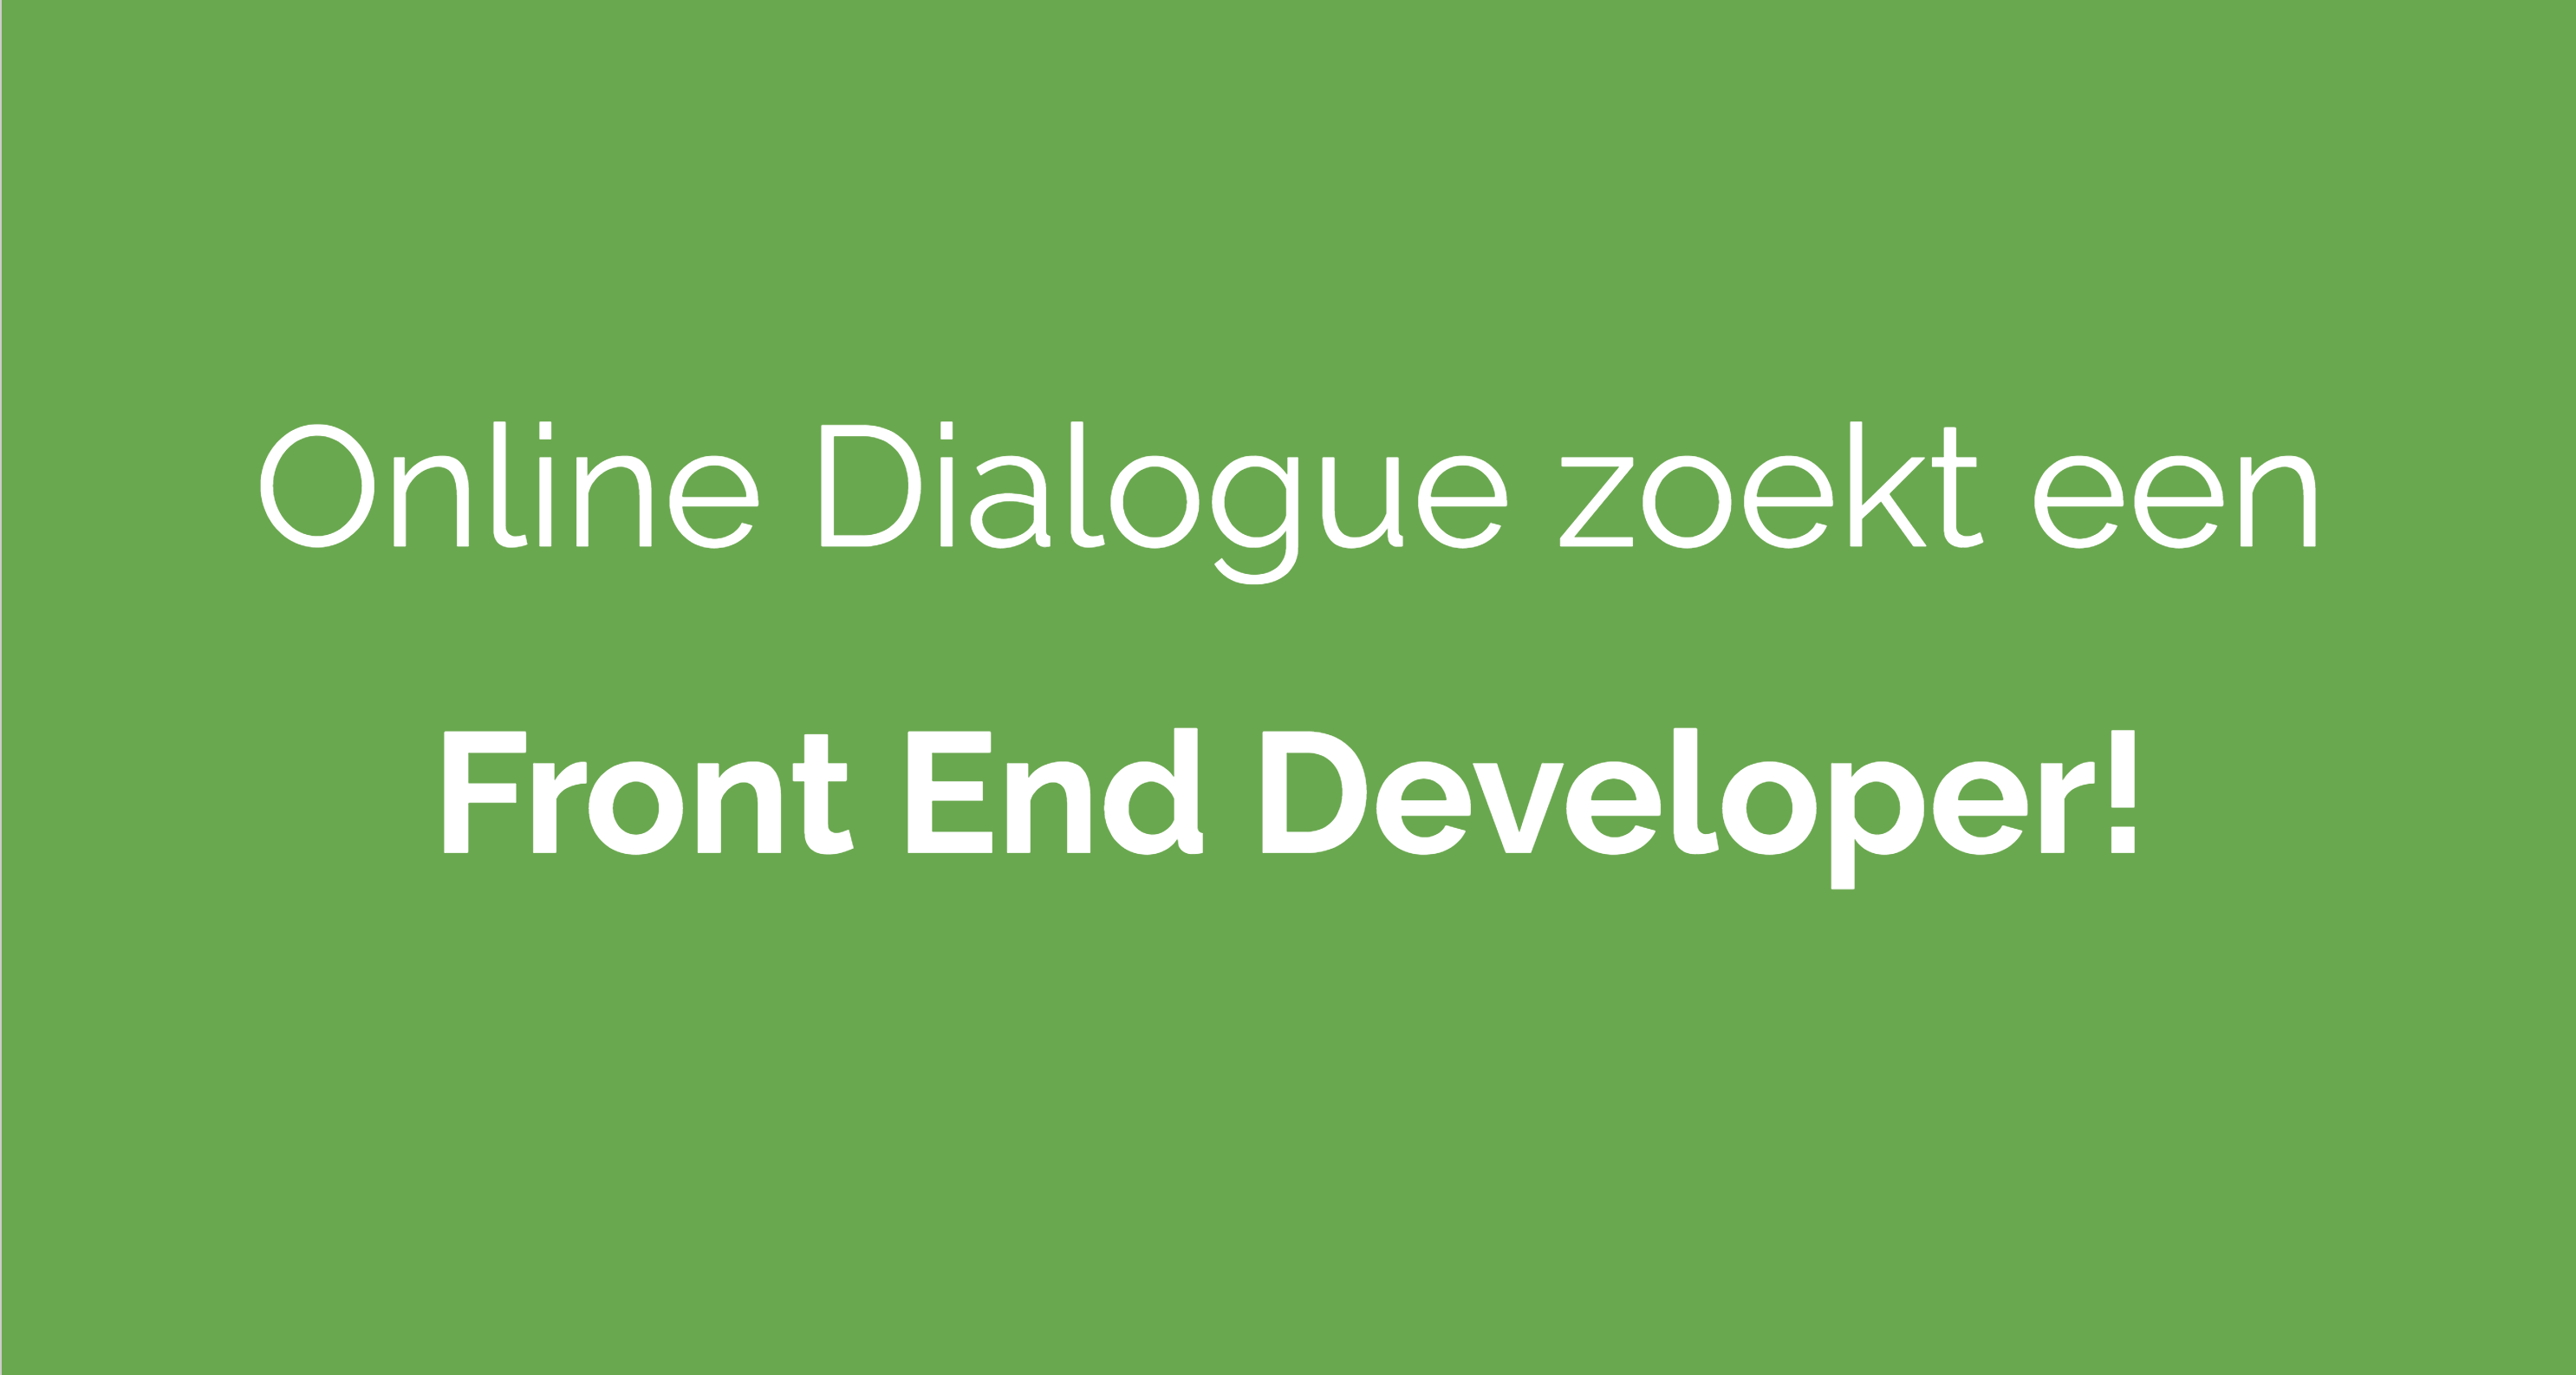 Online Dialogue zoekt een Front End Developer